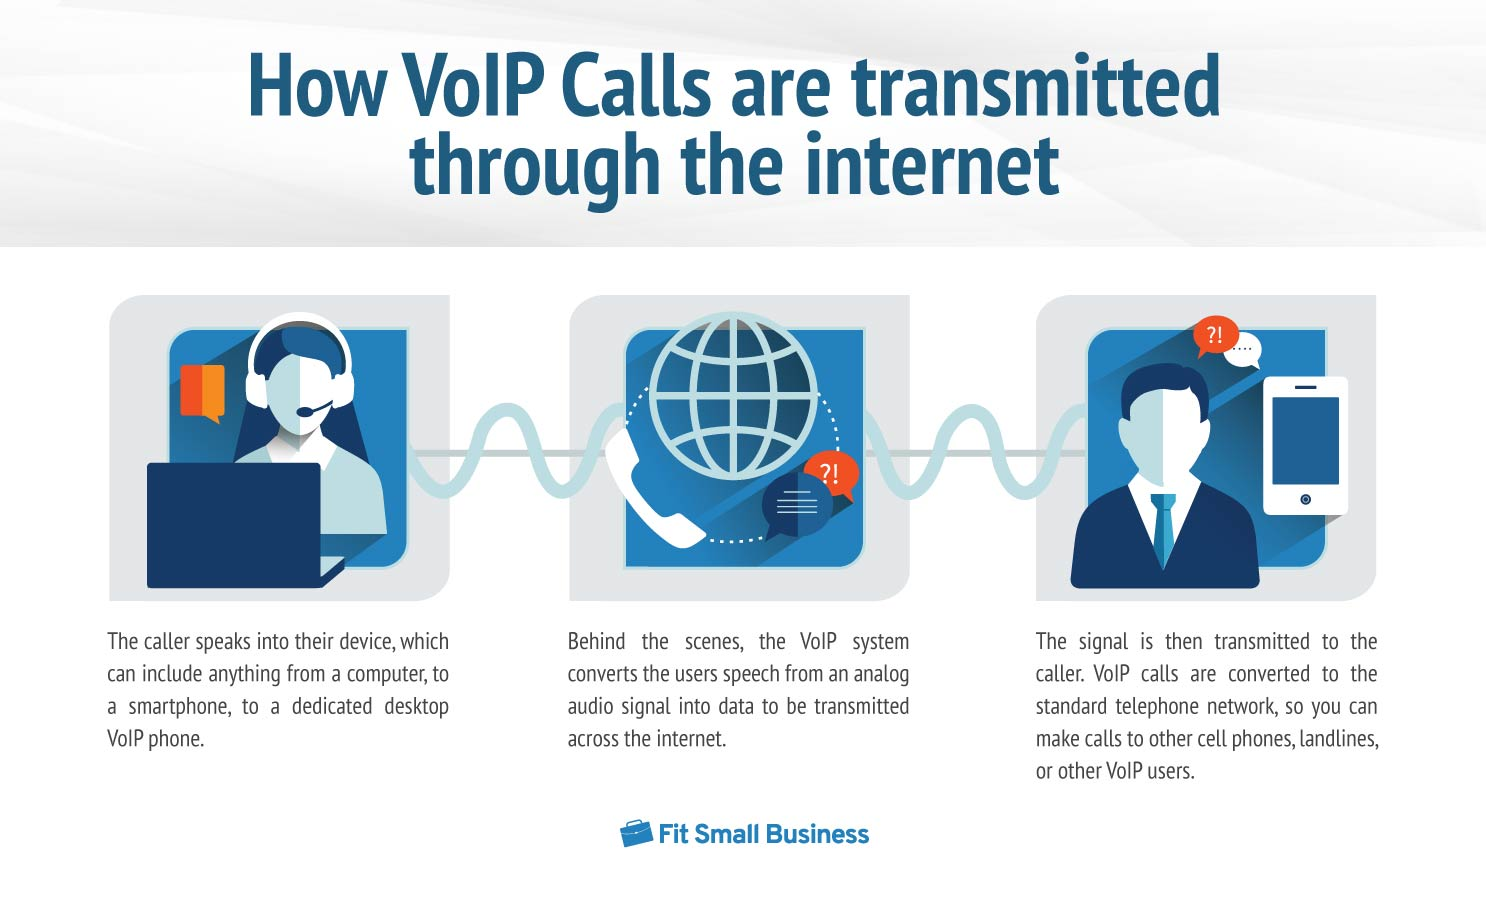 Steps on how VoIP Calls being Transmitted through the internet